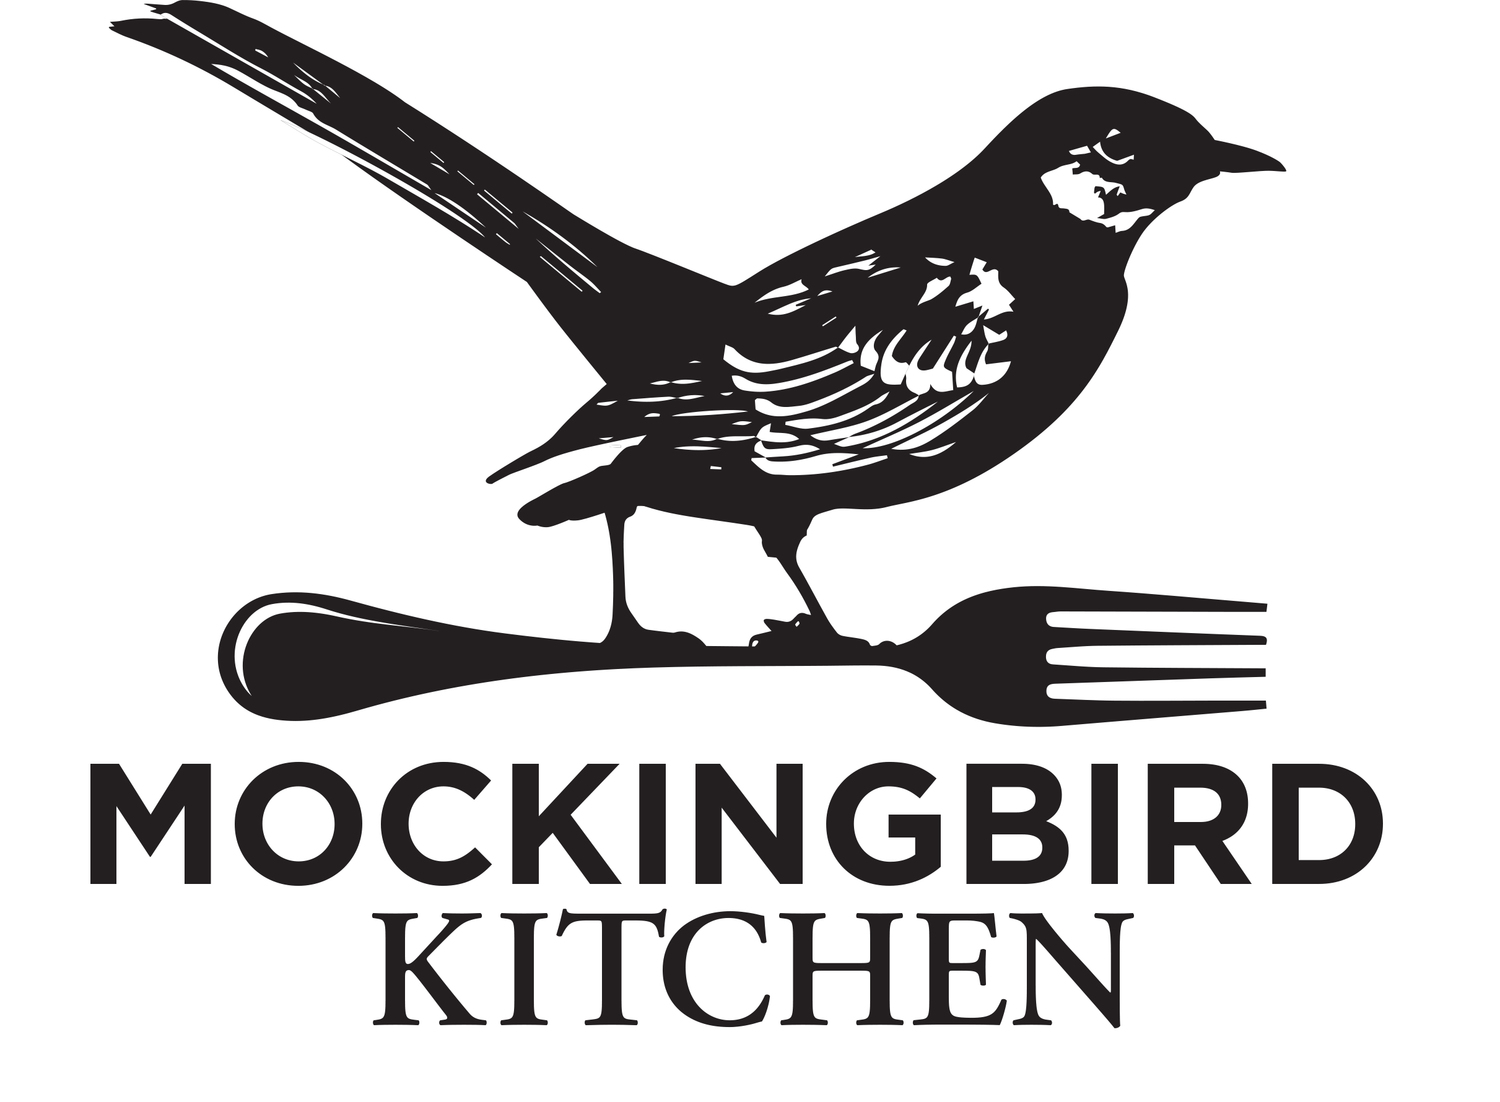 MOCKINGBIRD KITCHEN